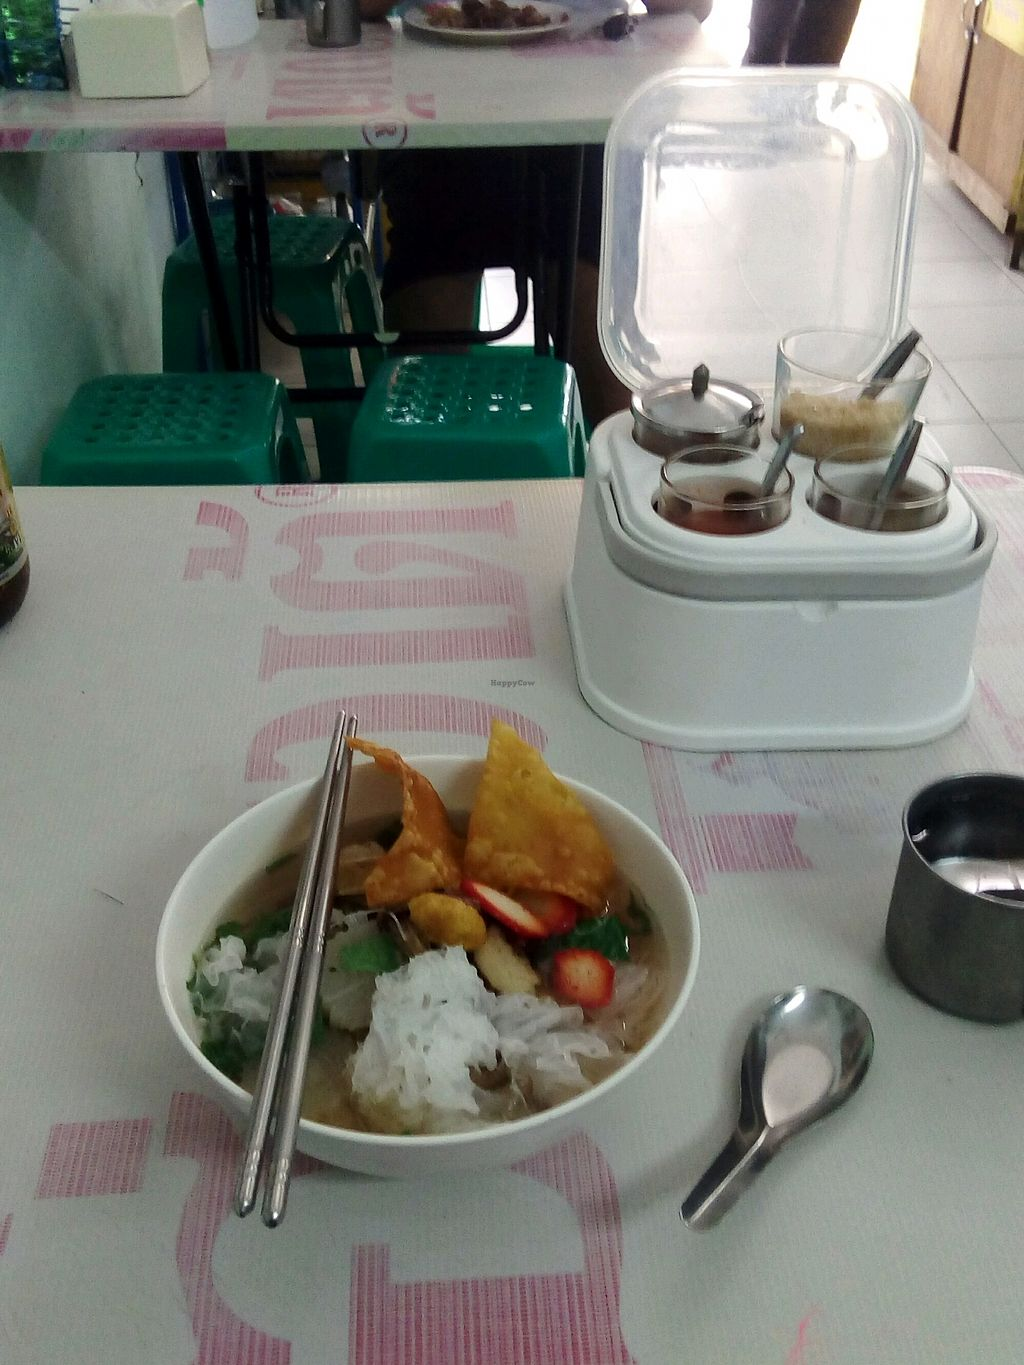 """Photo of Nam Heng Vegetarian  by <a href=""""/members/profile/Tofulicious"""">Tofulicious</a> <br/>Quay Teow Nam <br/> February 23, 2018  - <a href='/contact/abuse/image/4232/362814'>Report</a>"""